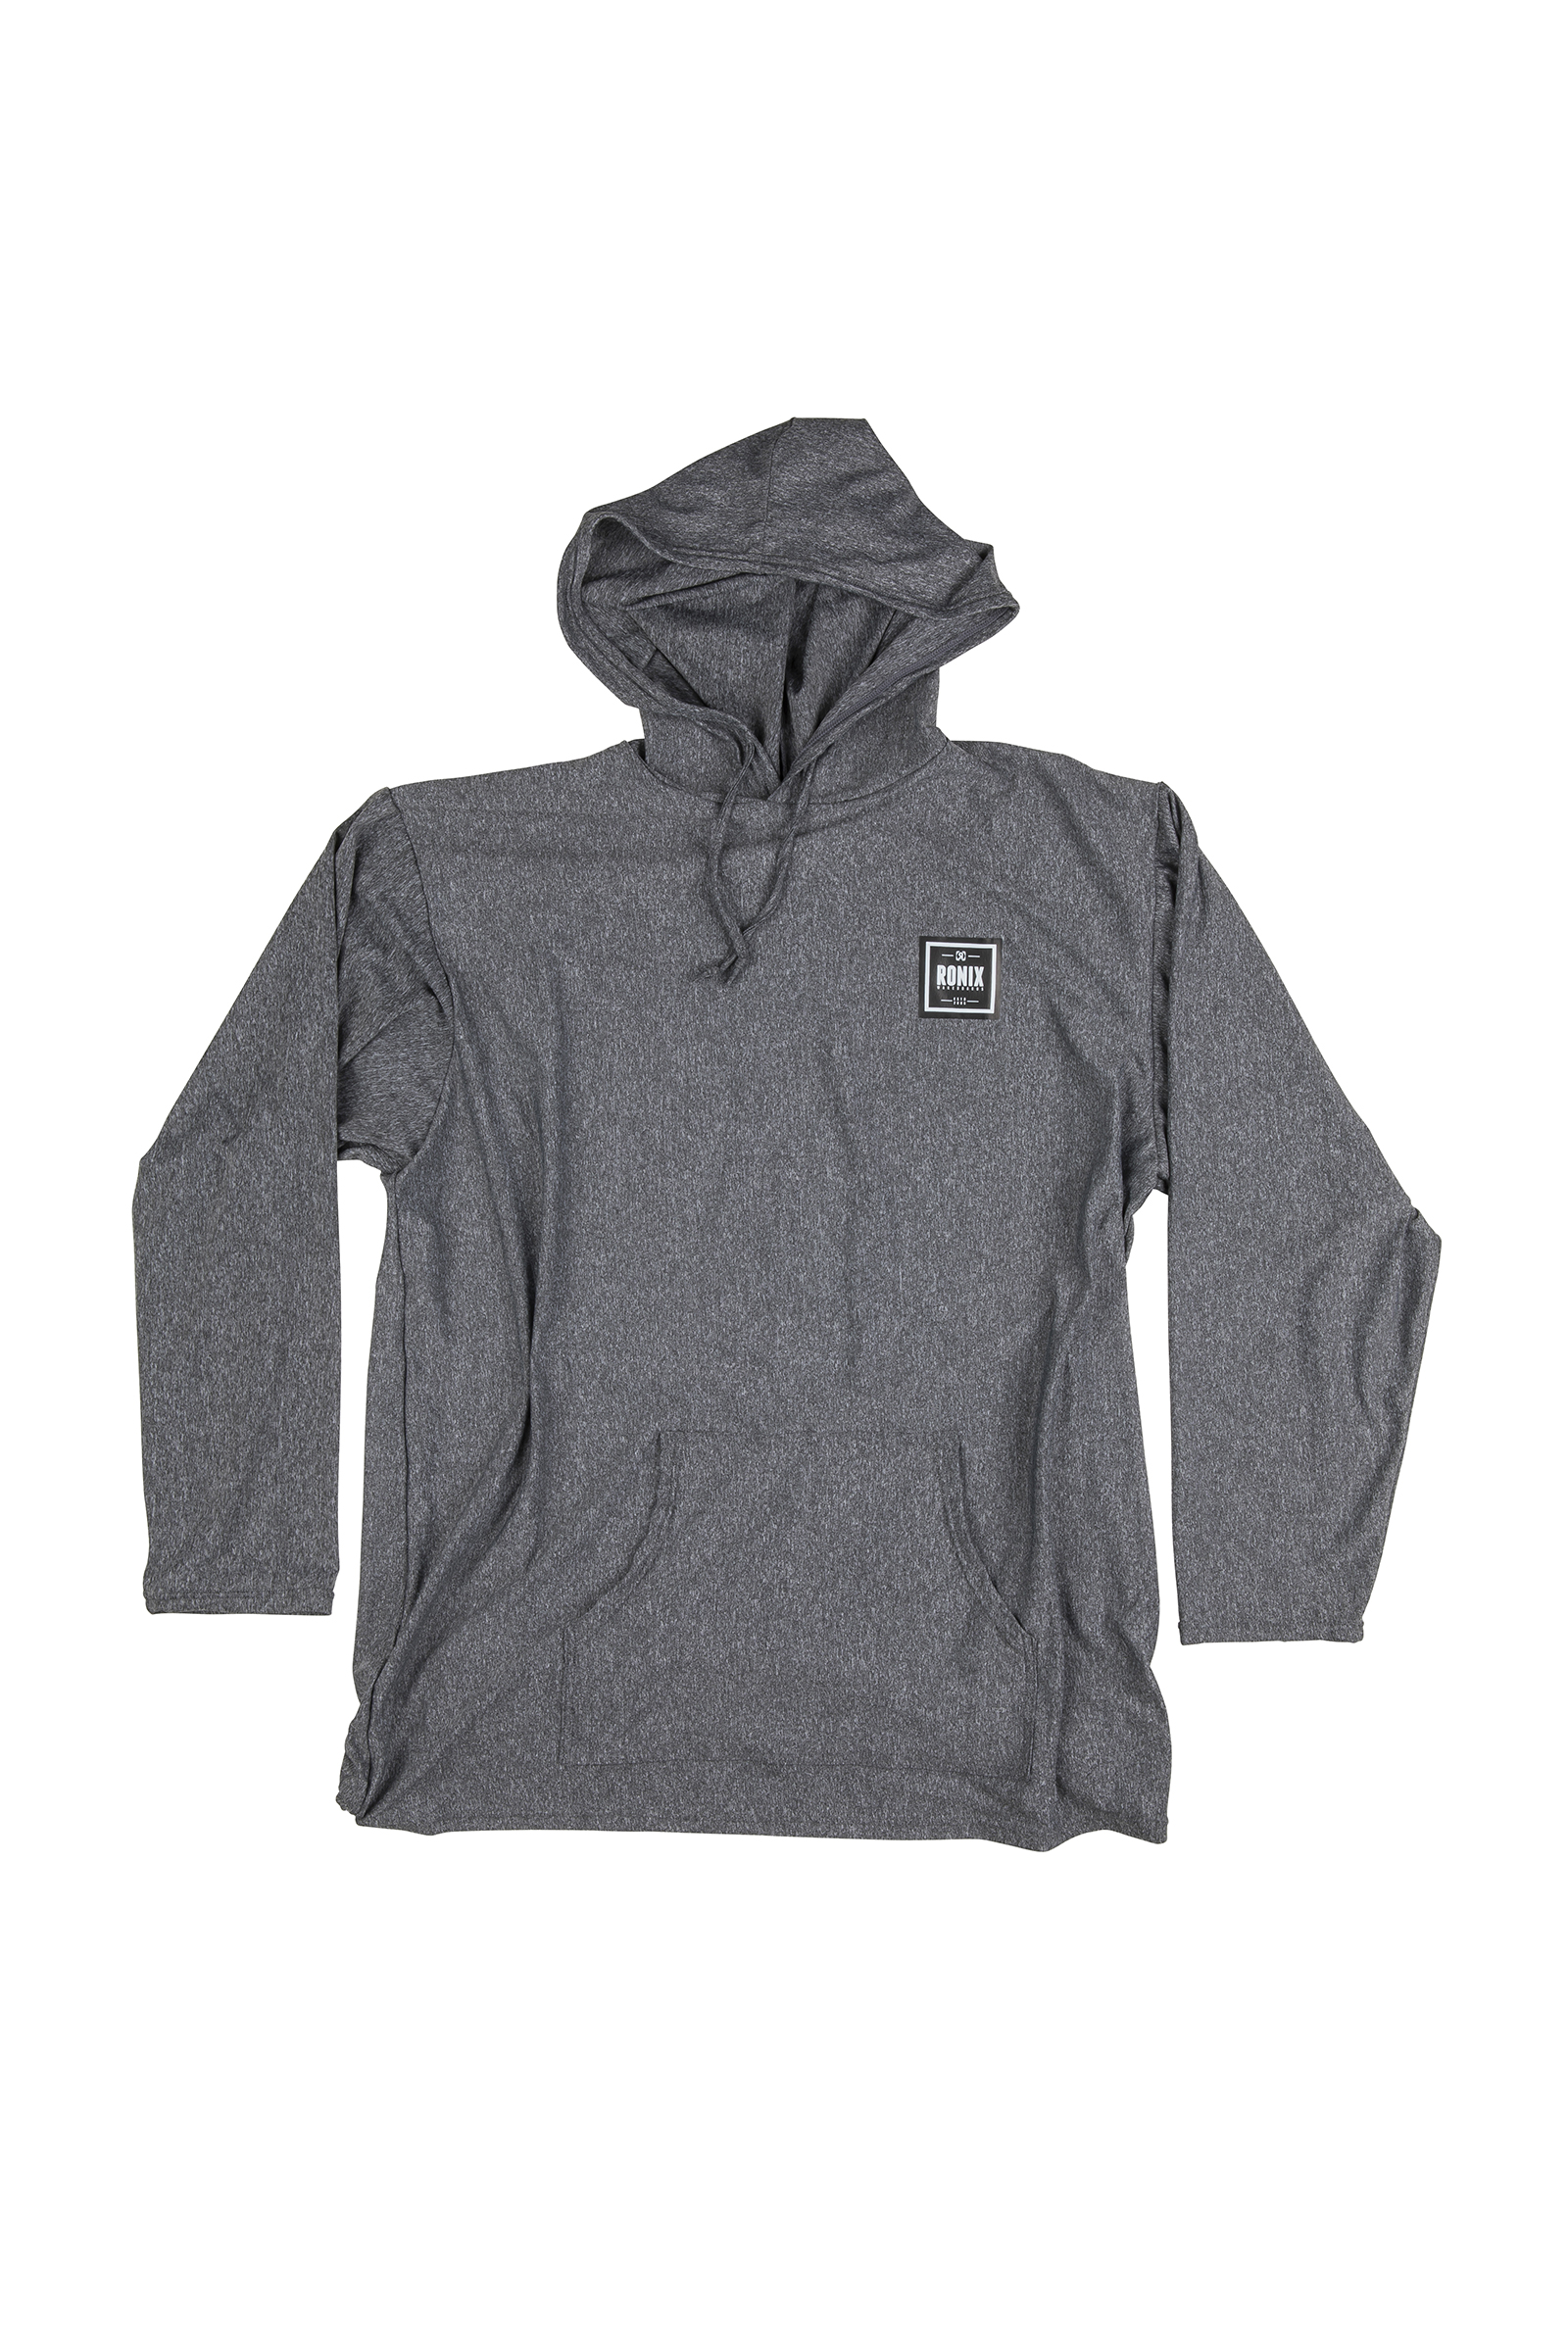 UV QUICK DRY HOODIE LONG SLEEVE RONIX 2018